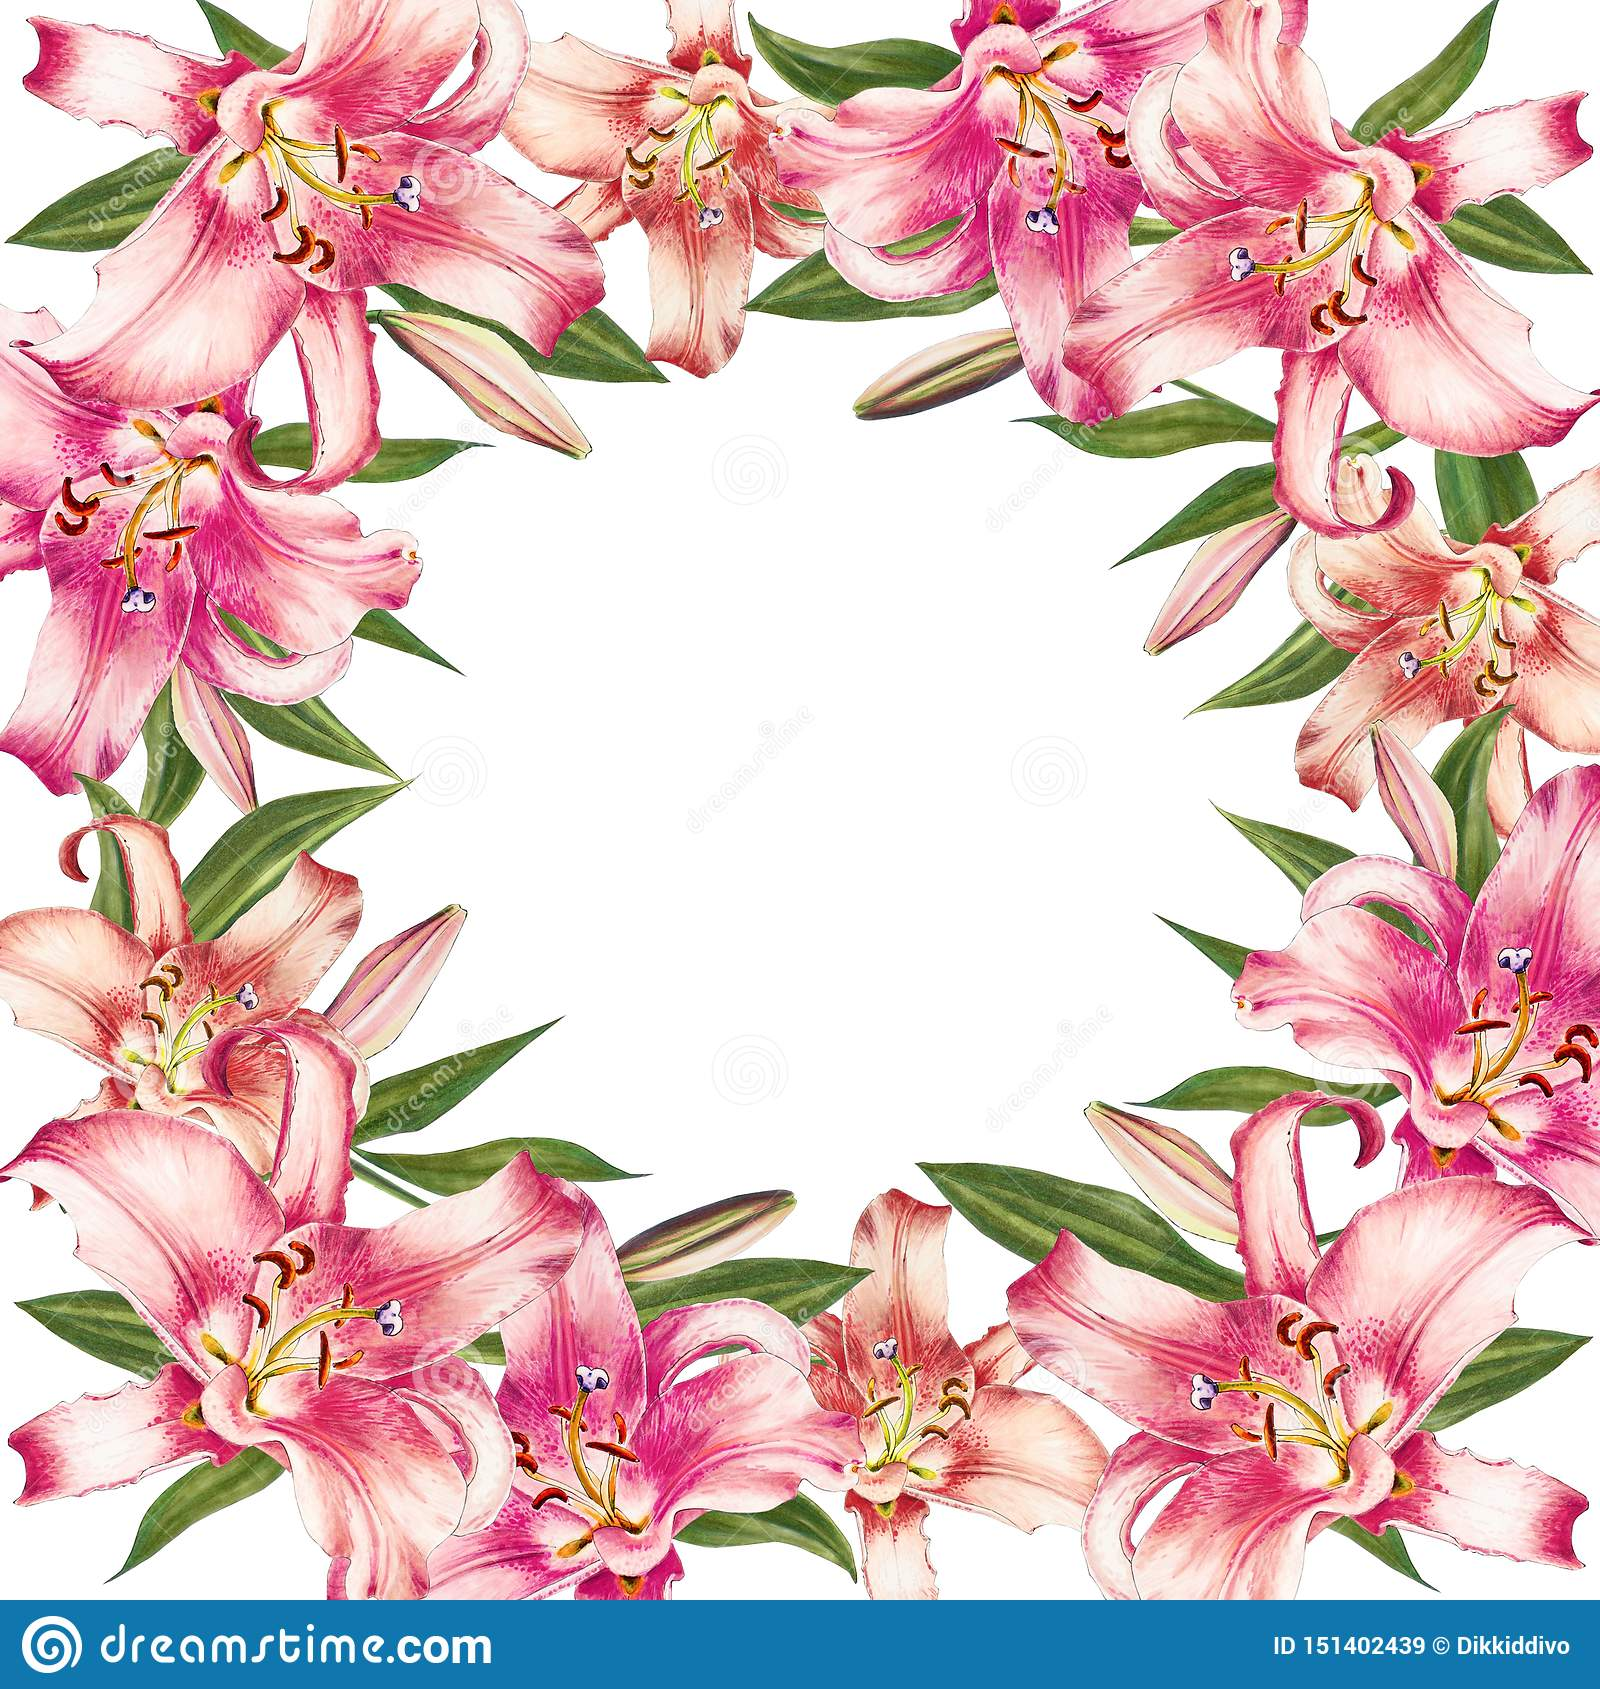 Beautiful pink lily border frame. Bouquet of flowers. Floral print. Marker drawing.